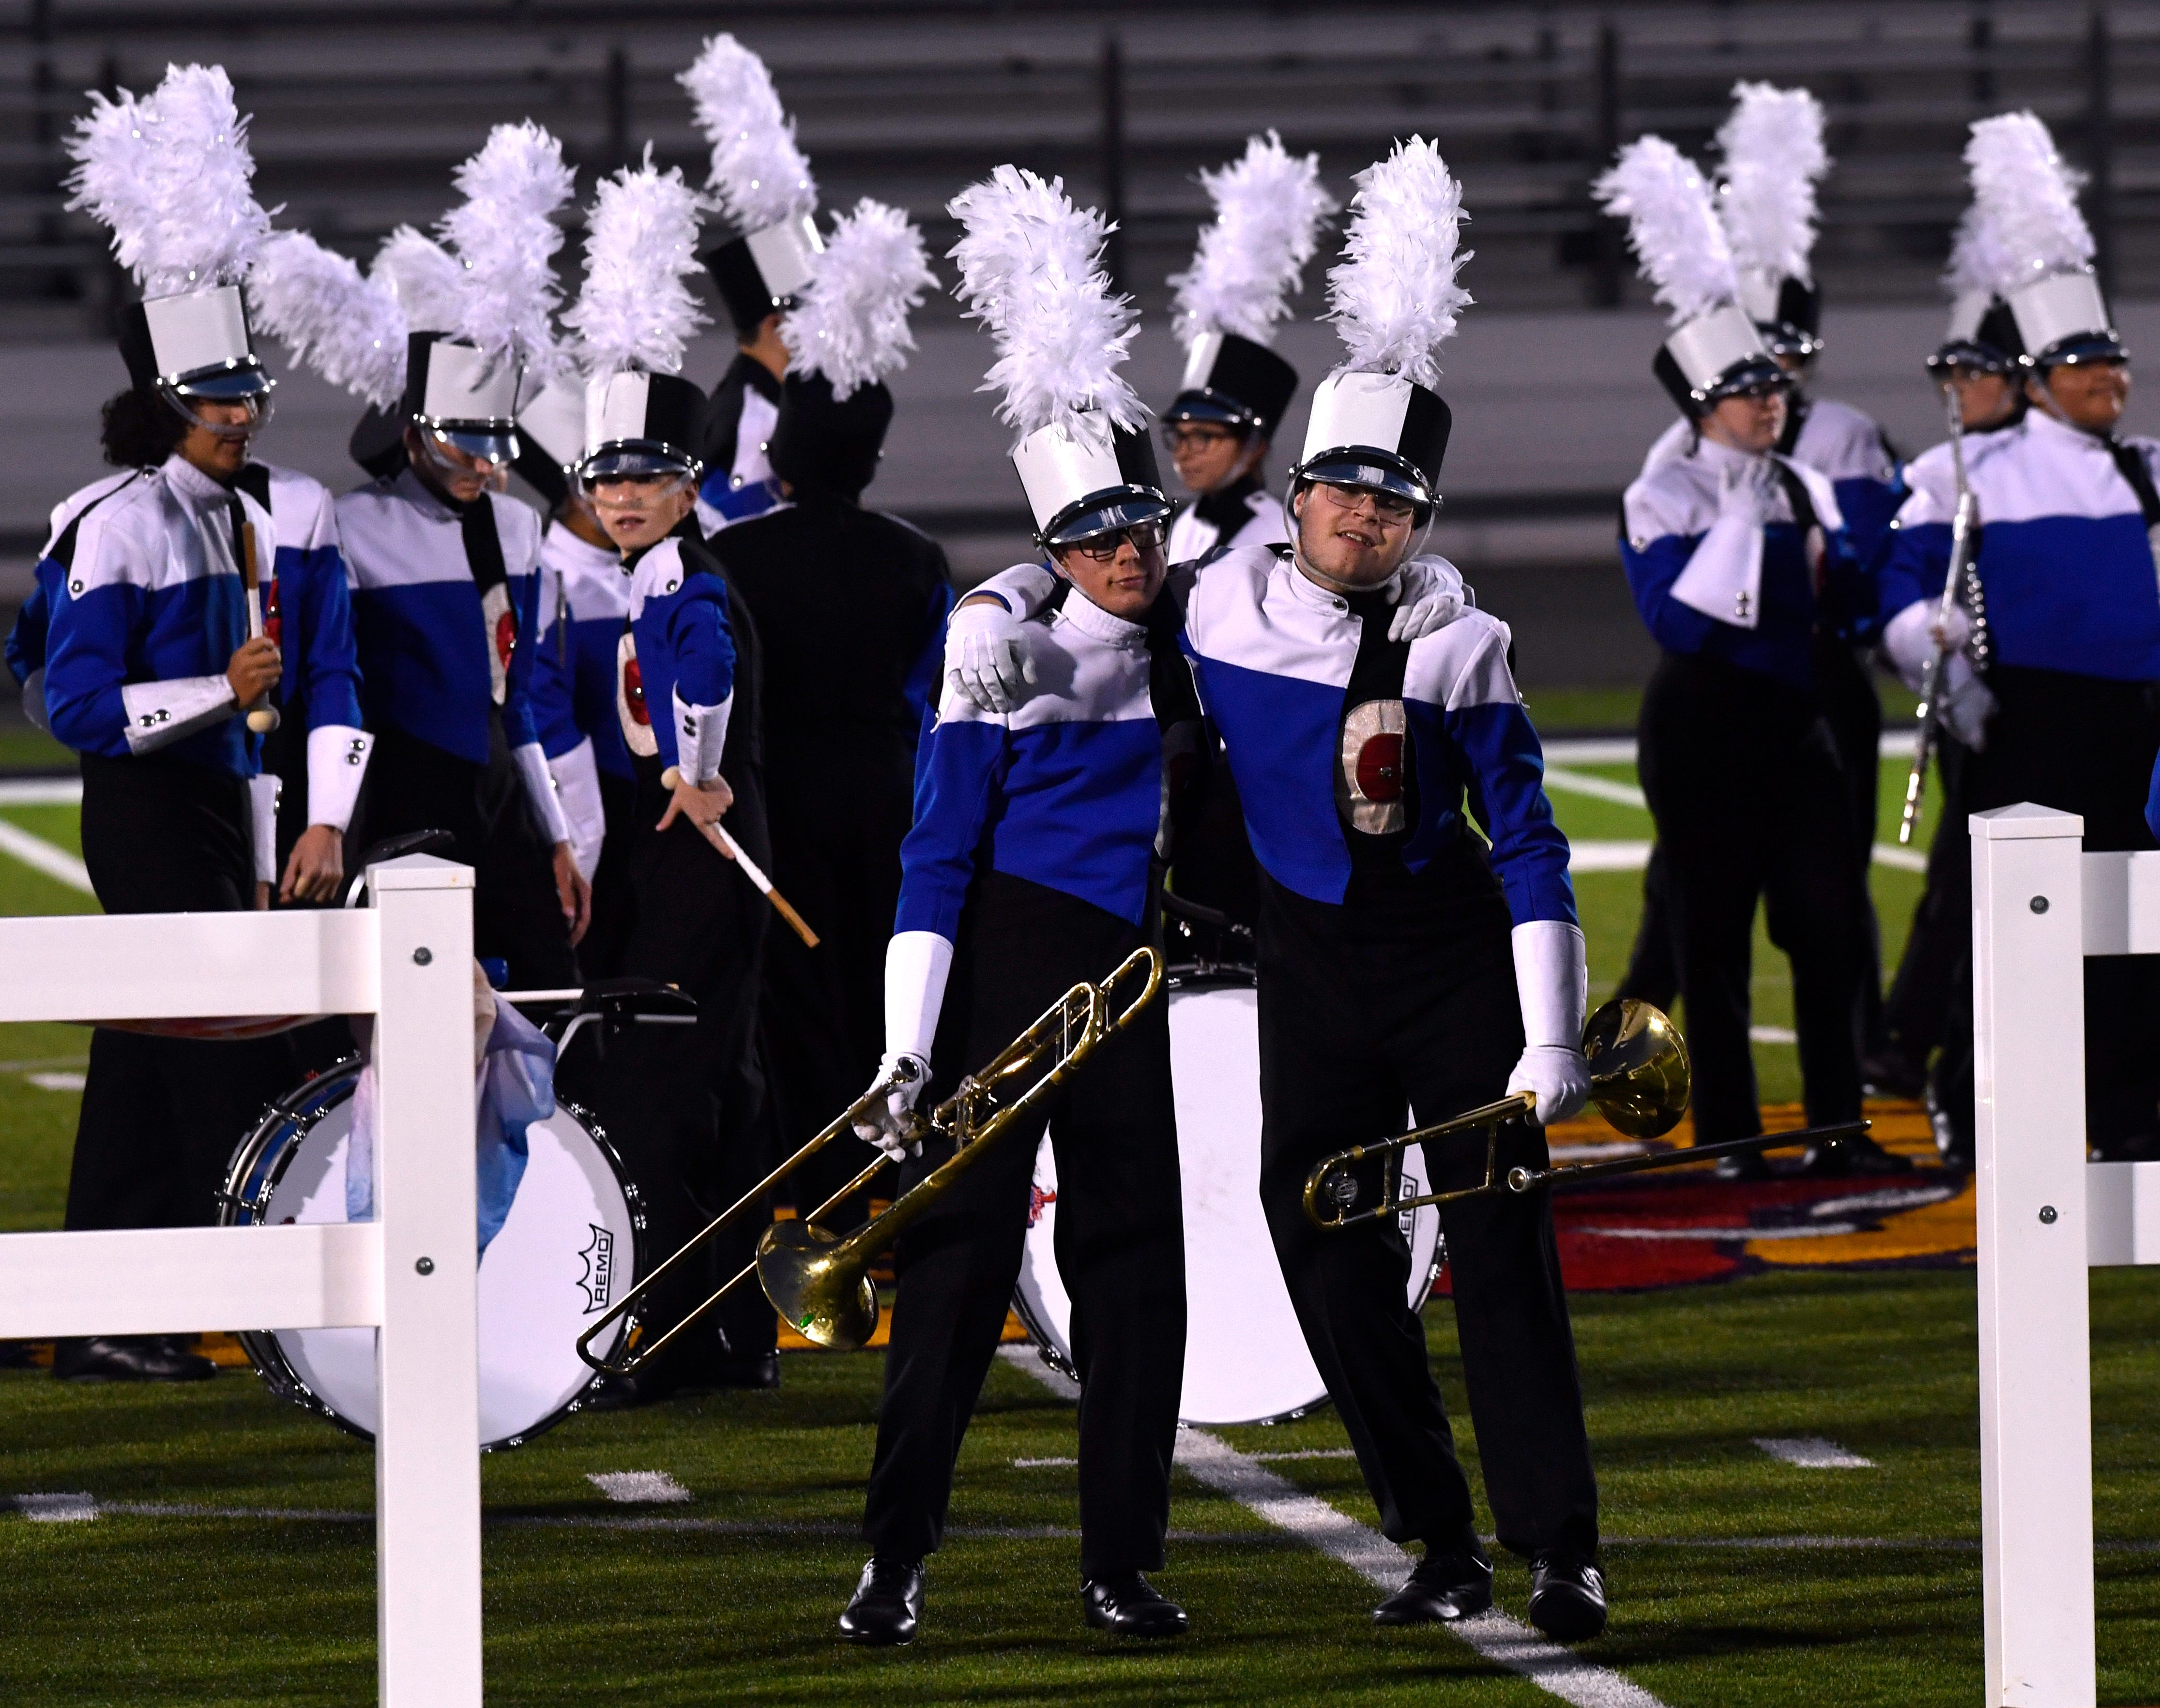 The Cooper High School Awesome Cooper Band performs its show Monday. Cooper received a Division 1 rating.